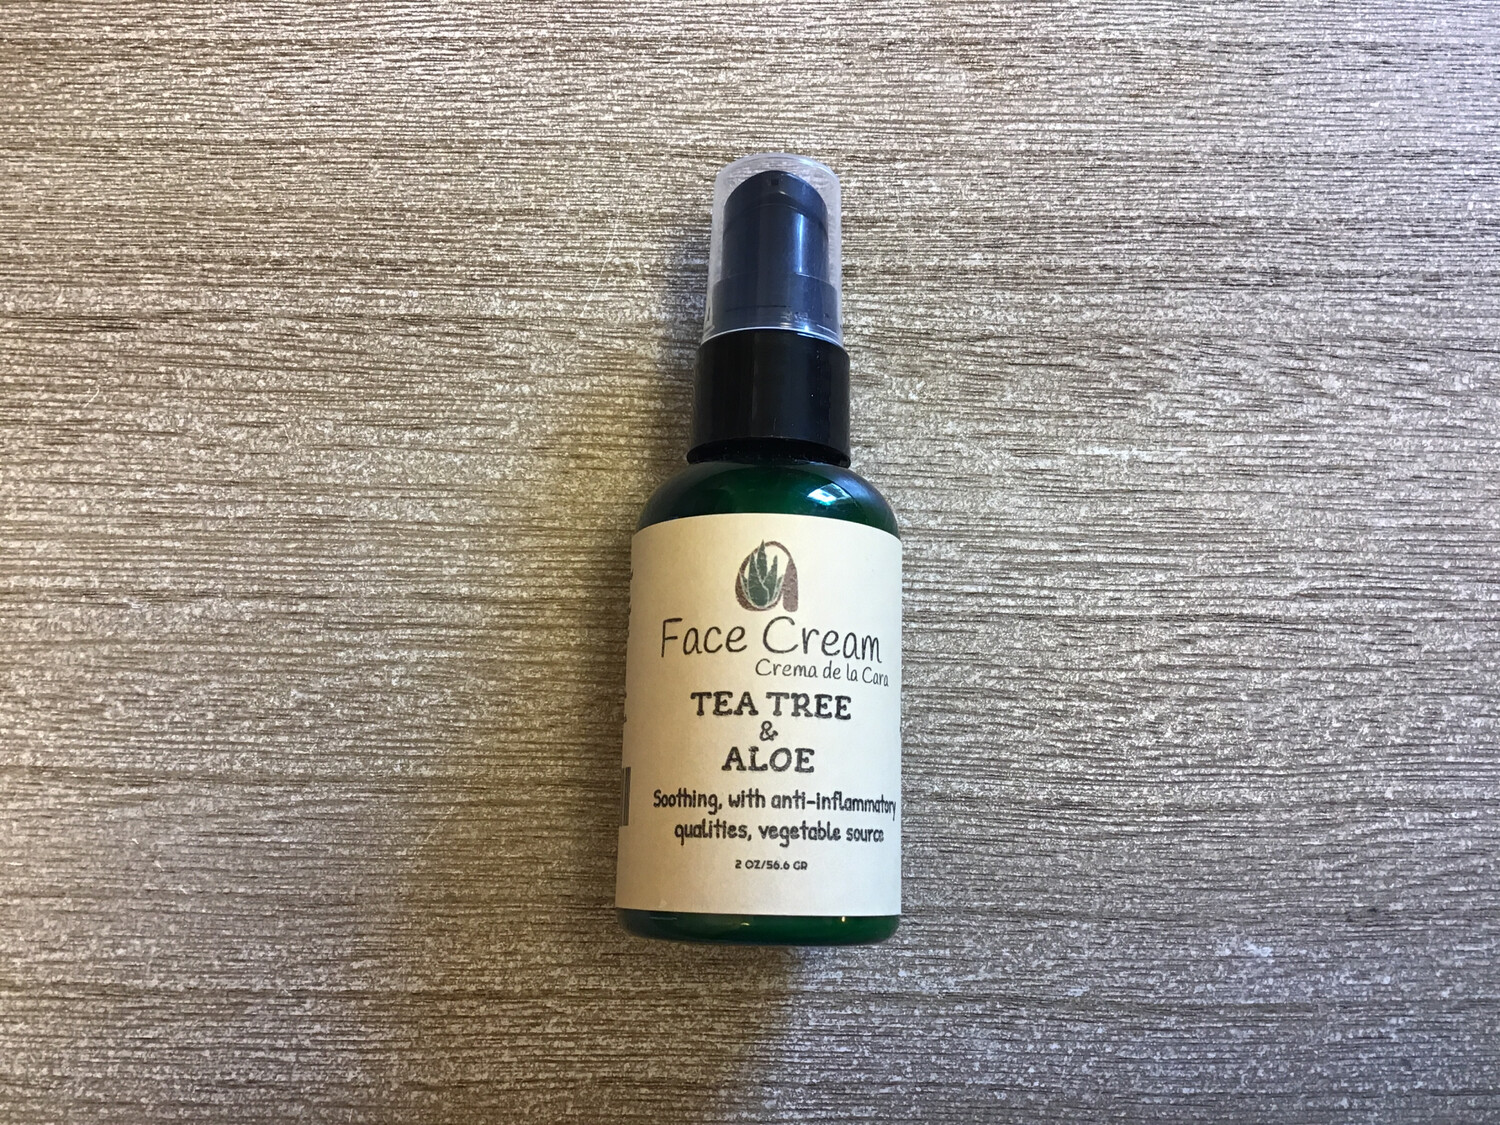 TEA TREE ALOE FACE CREAM